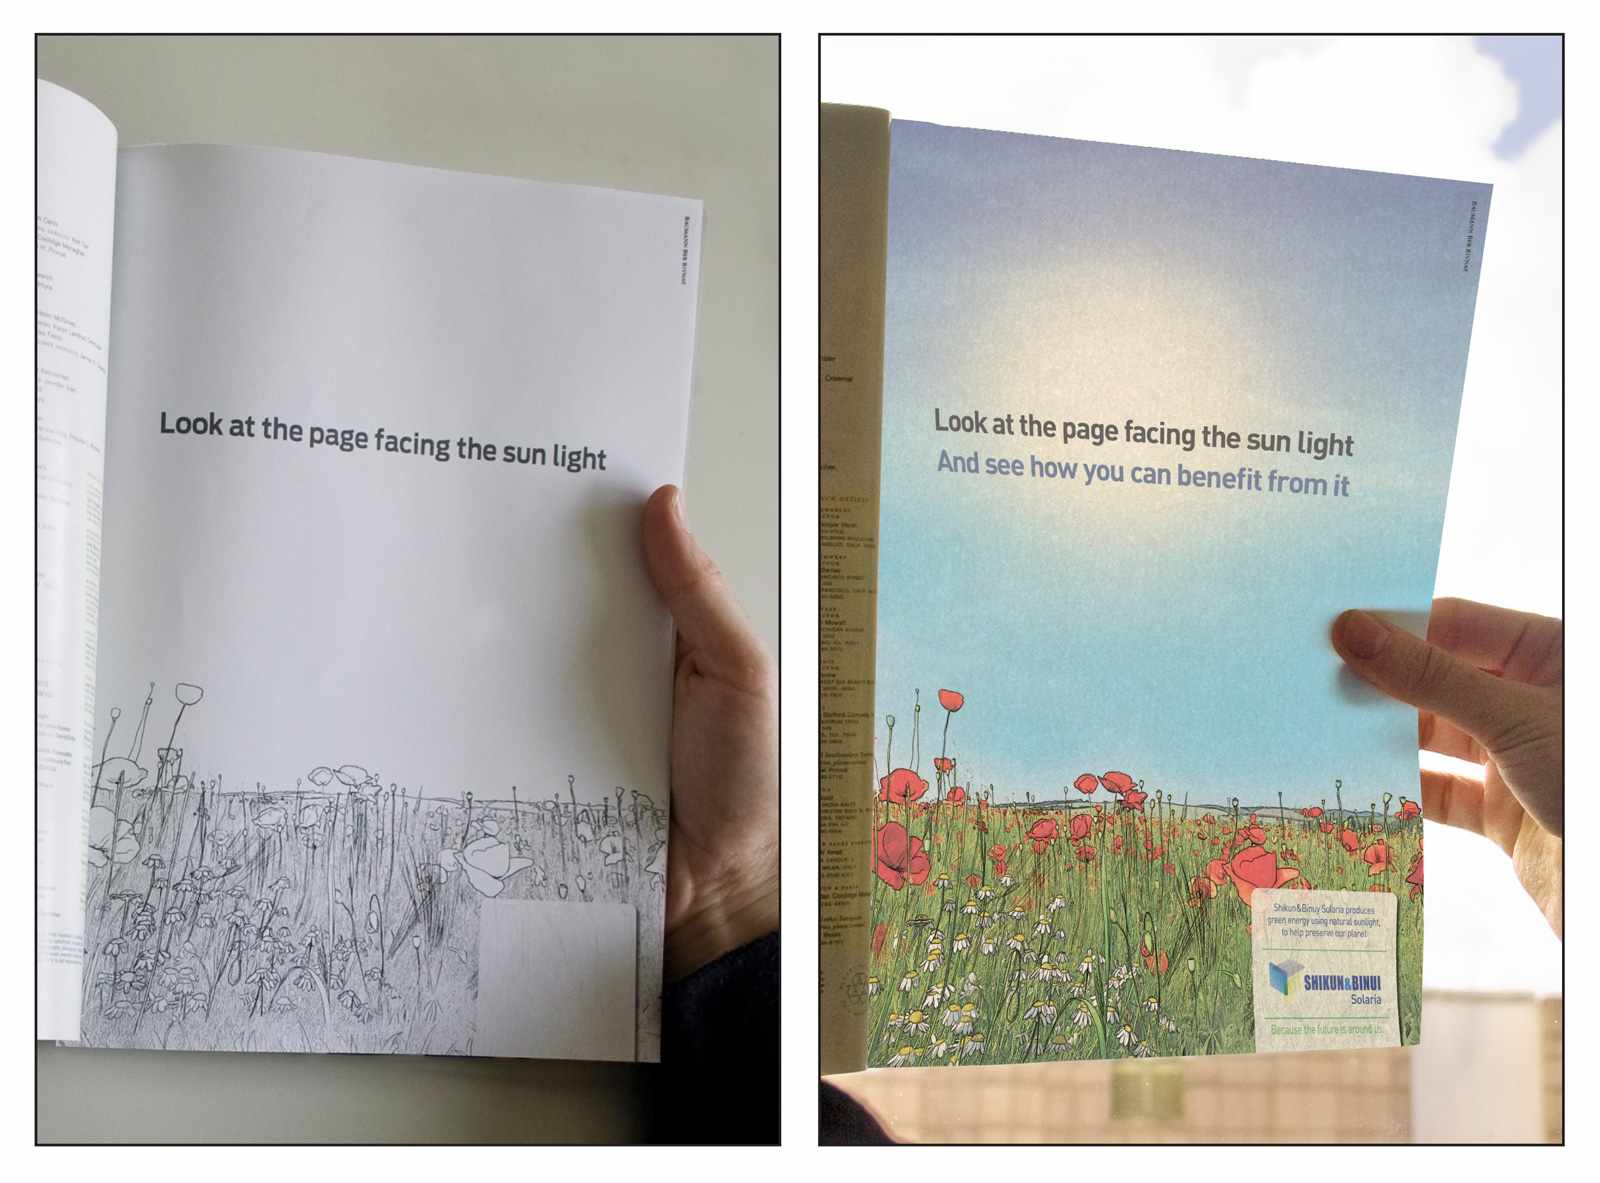 Interactive print advertisement by Shikun & Binui Solaria promoting green energy